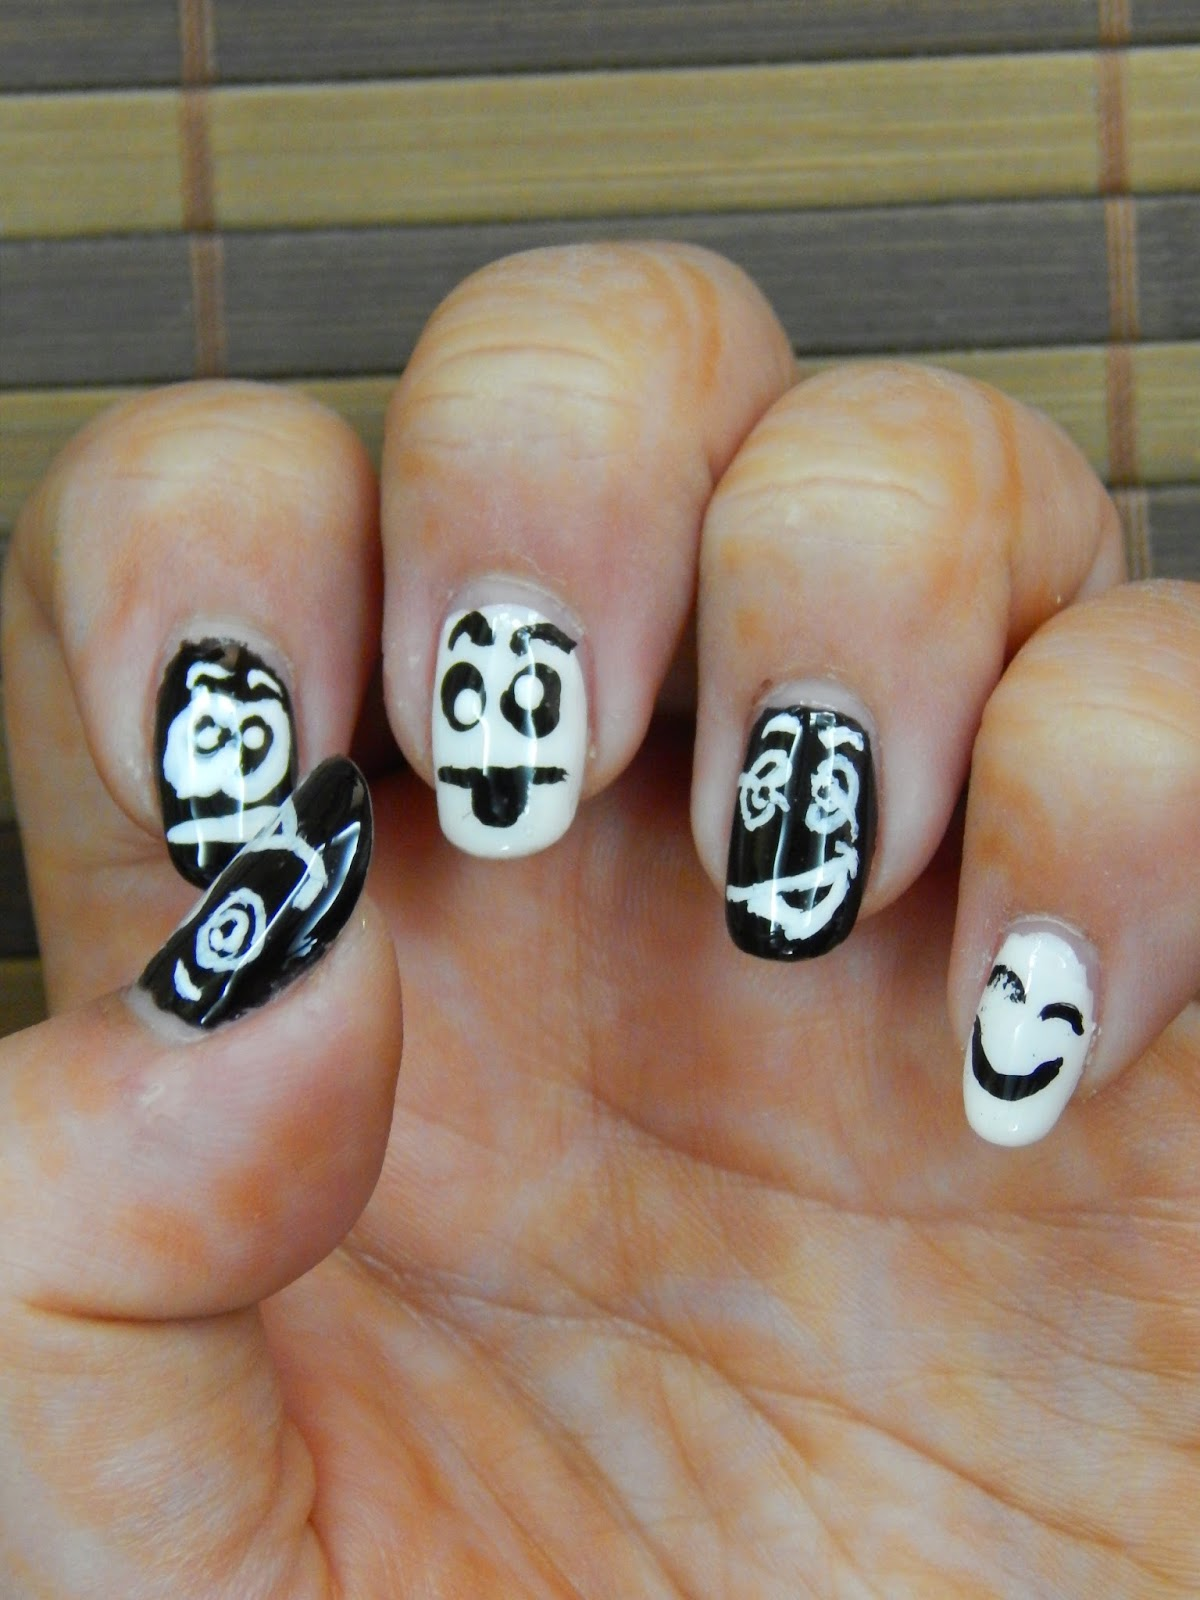 Her Creative Palace: Funny Faces Nail Art: Design & Tutorial